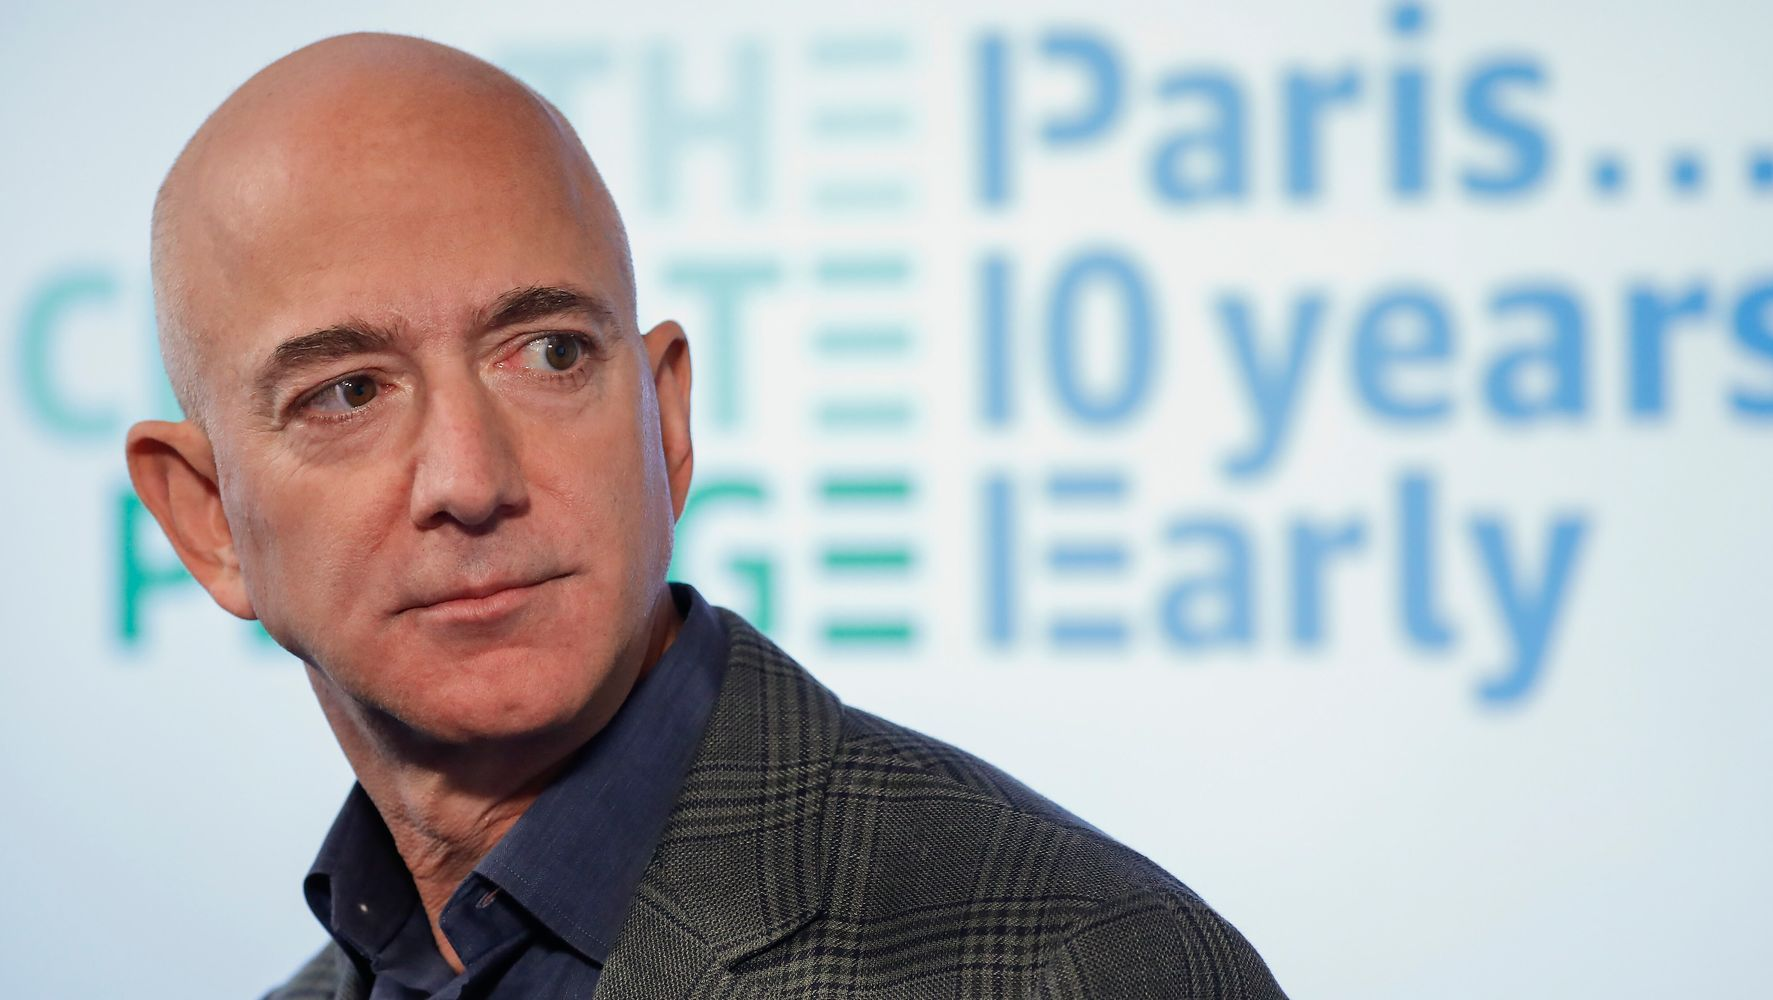 Westlake Legal Group 5e285c0d2100001703ffff75 U.N. Experts: Saudi Crown Prince Likely Involved In Hacking Of Jeff Bezos' Phone